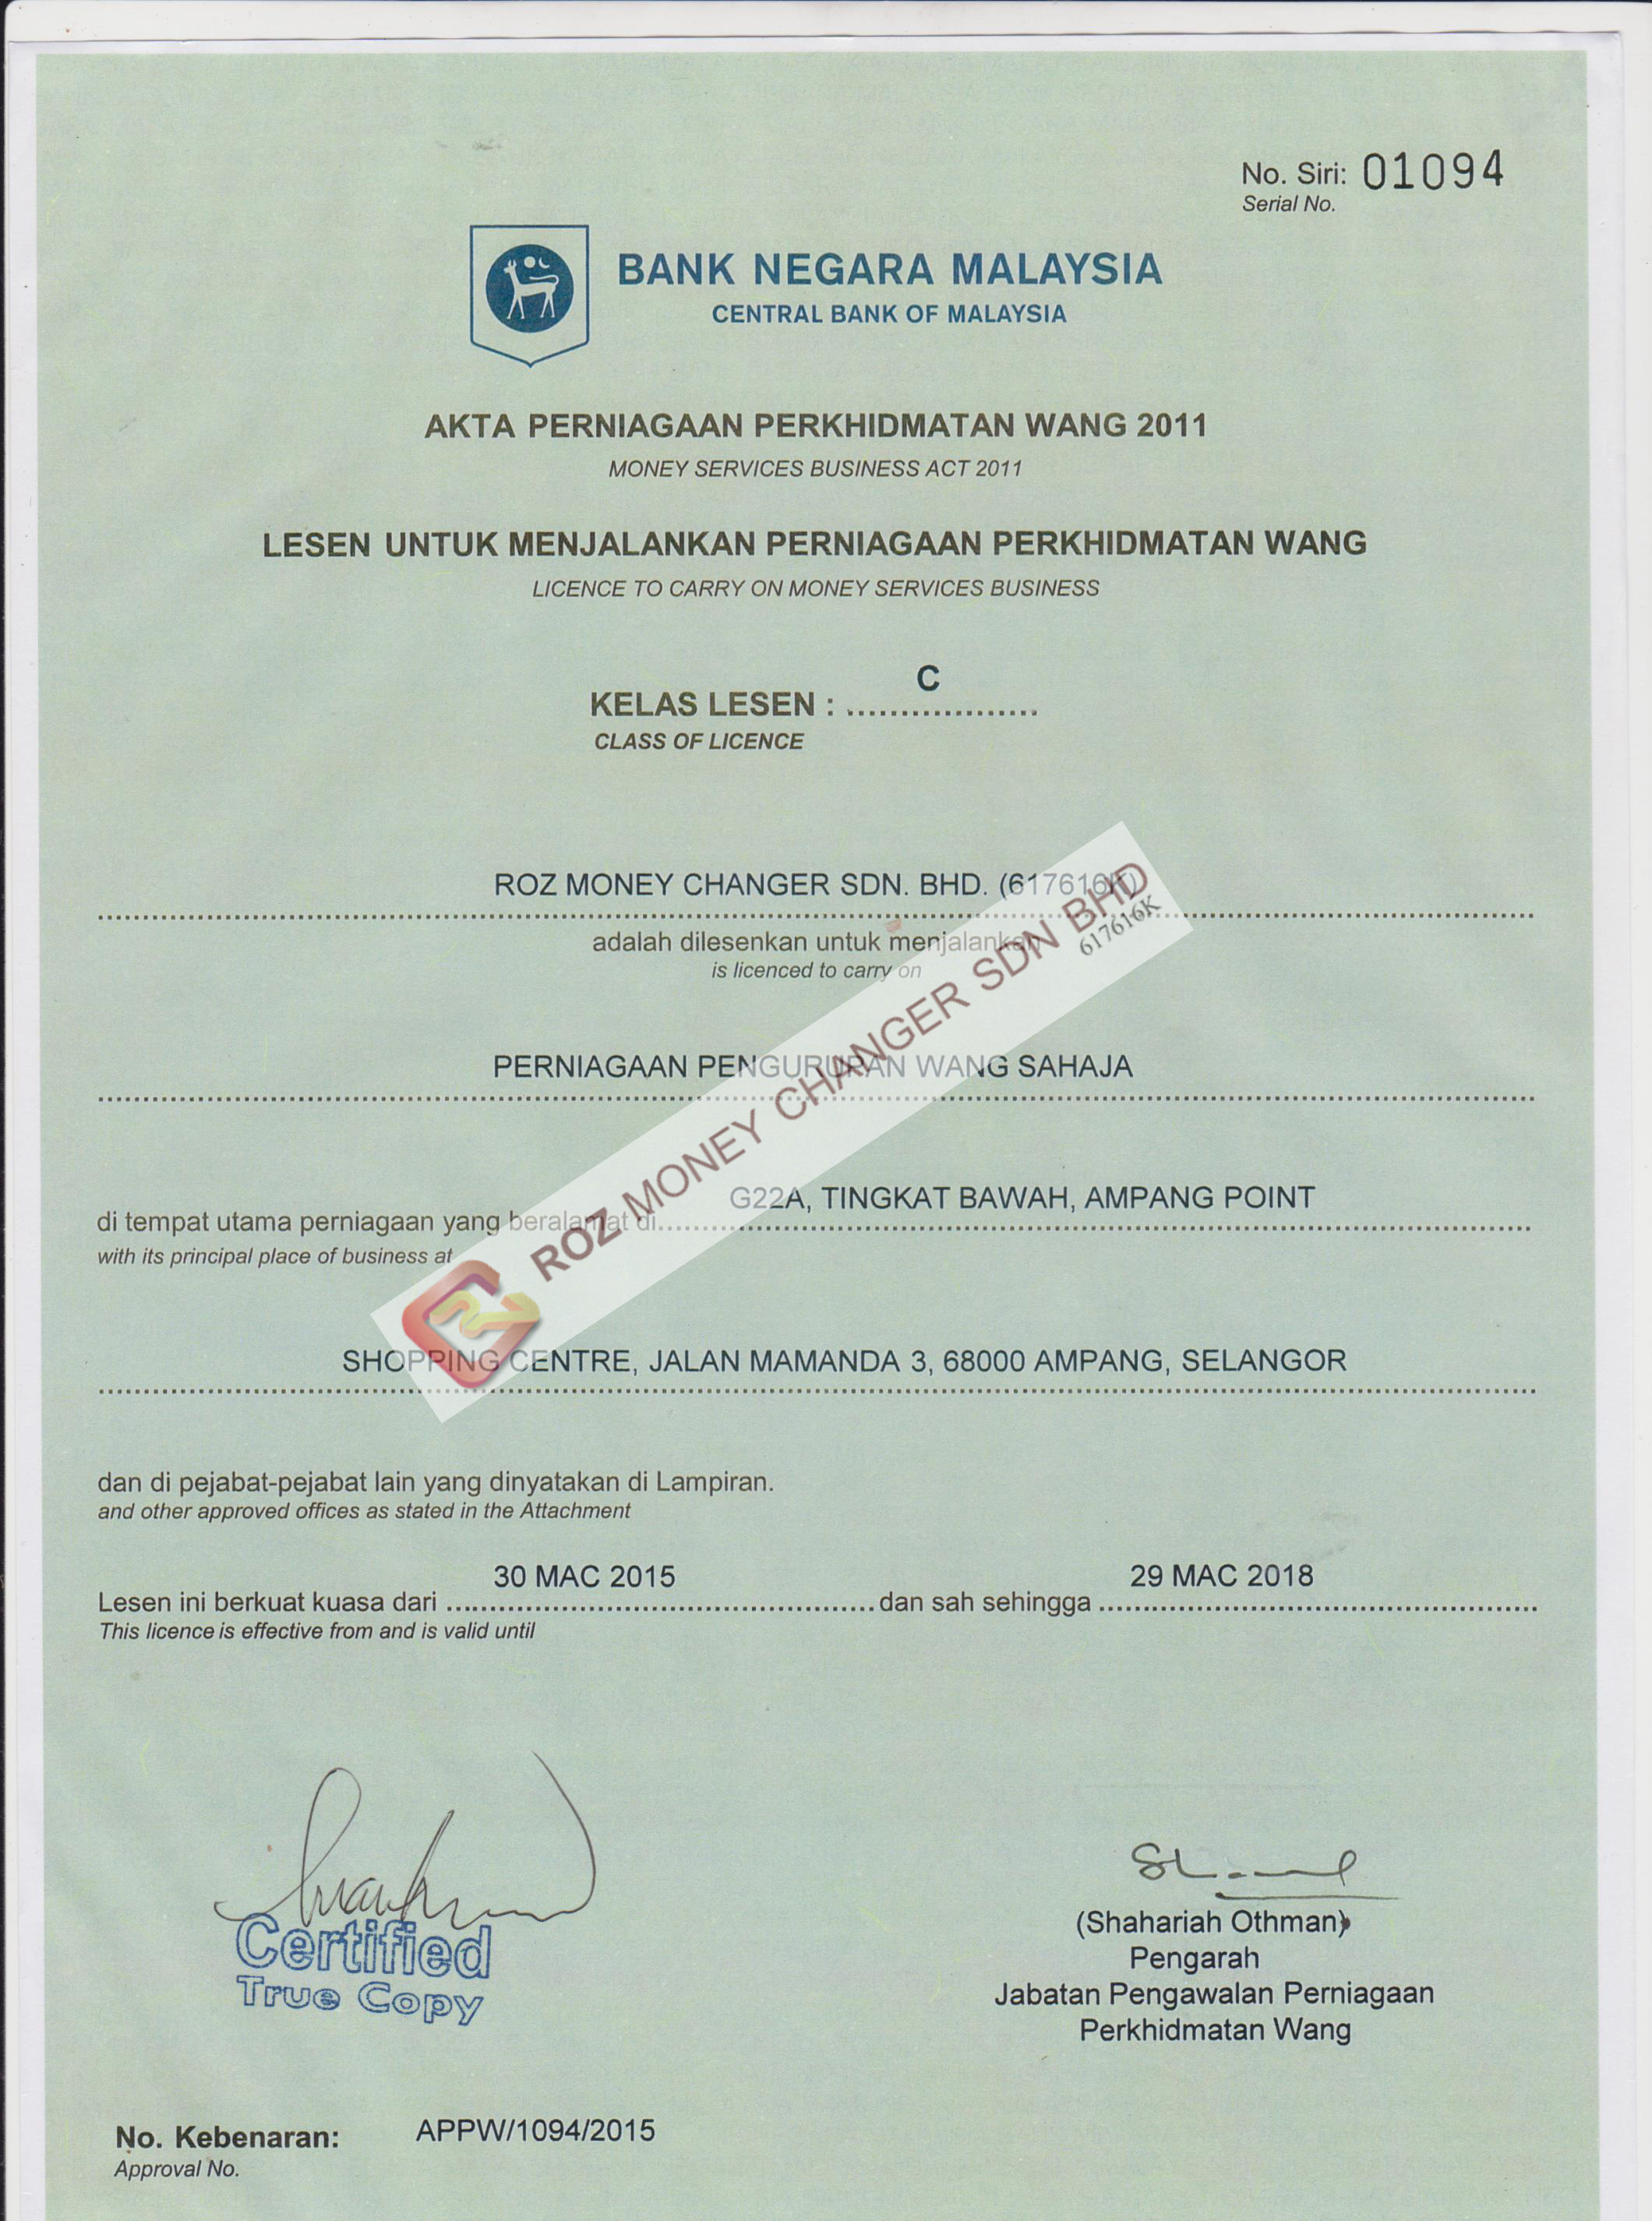 Our Bnm License From Malaysia S National Bank For Conducting Money Changer